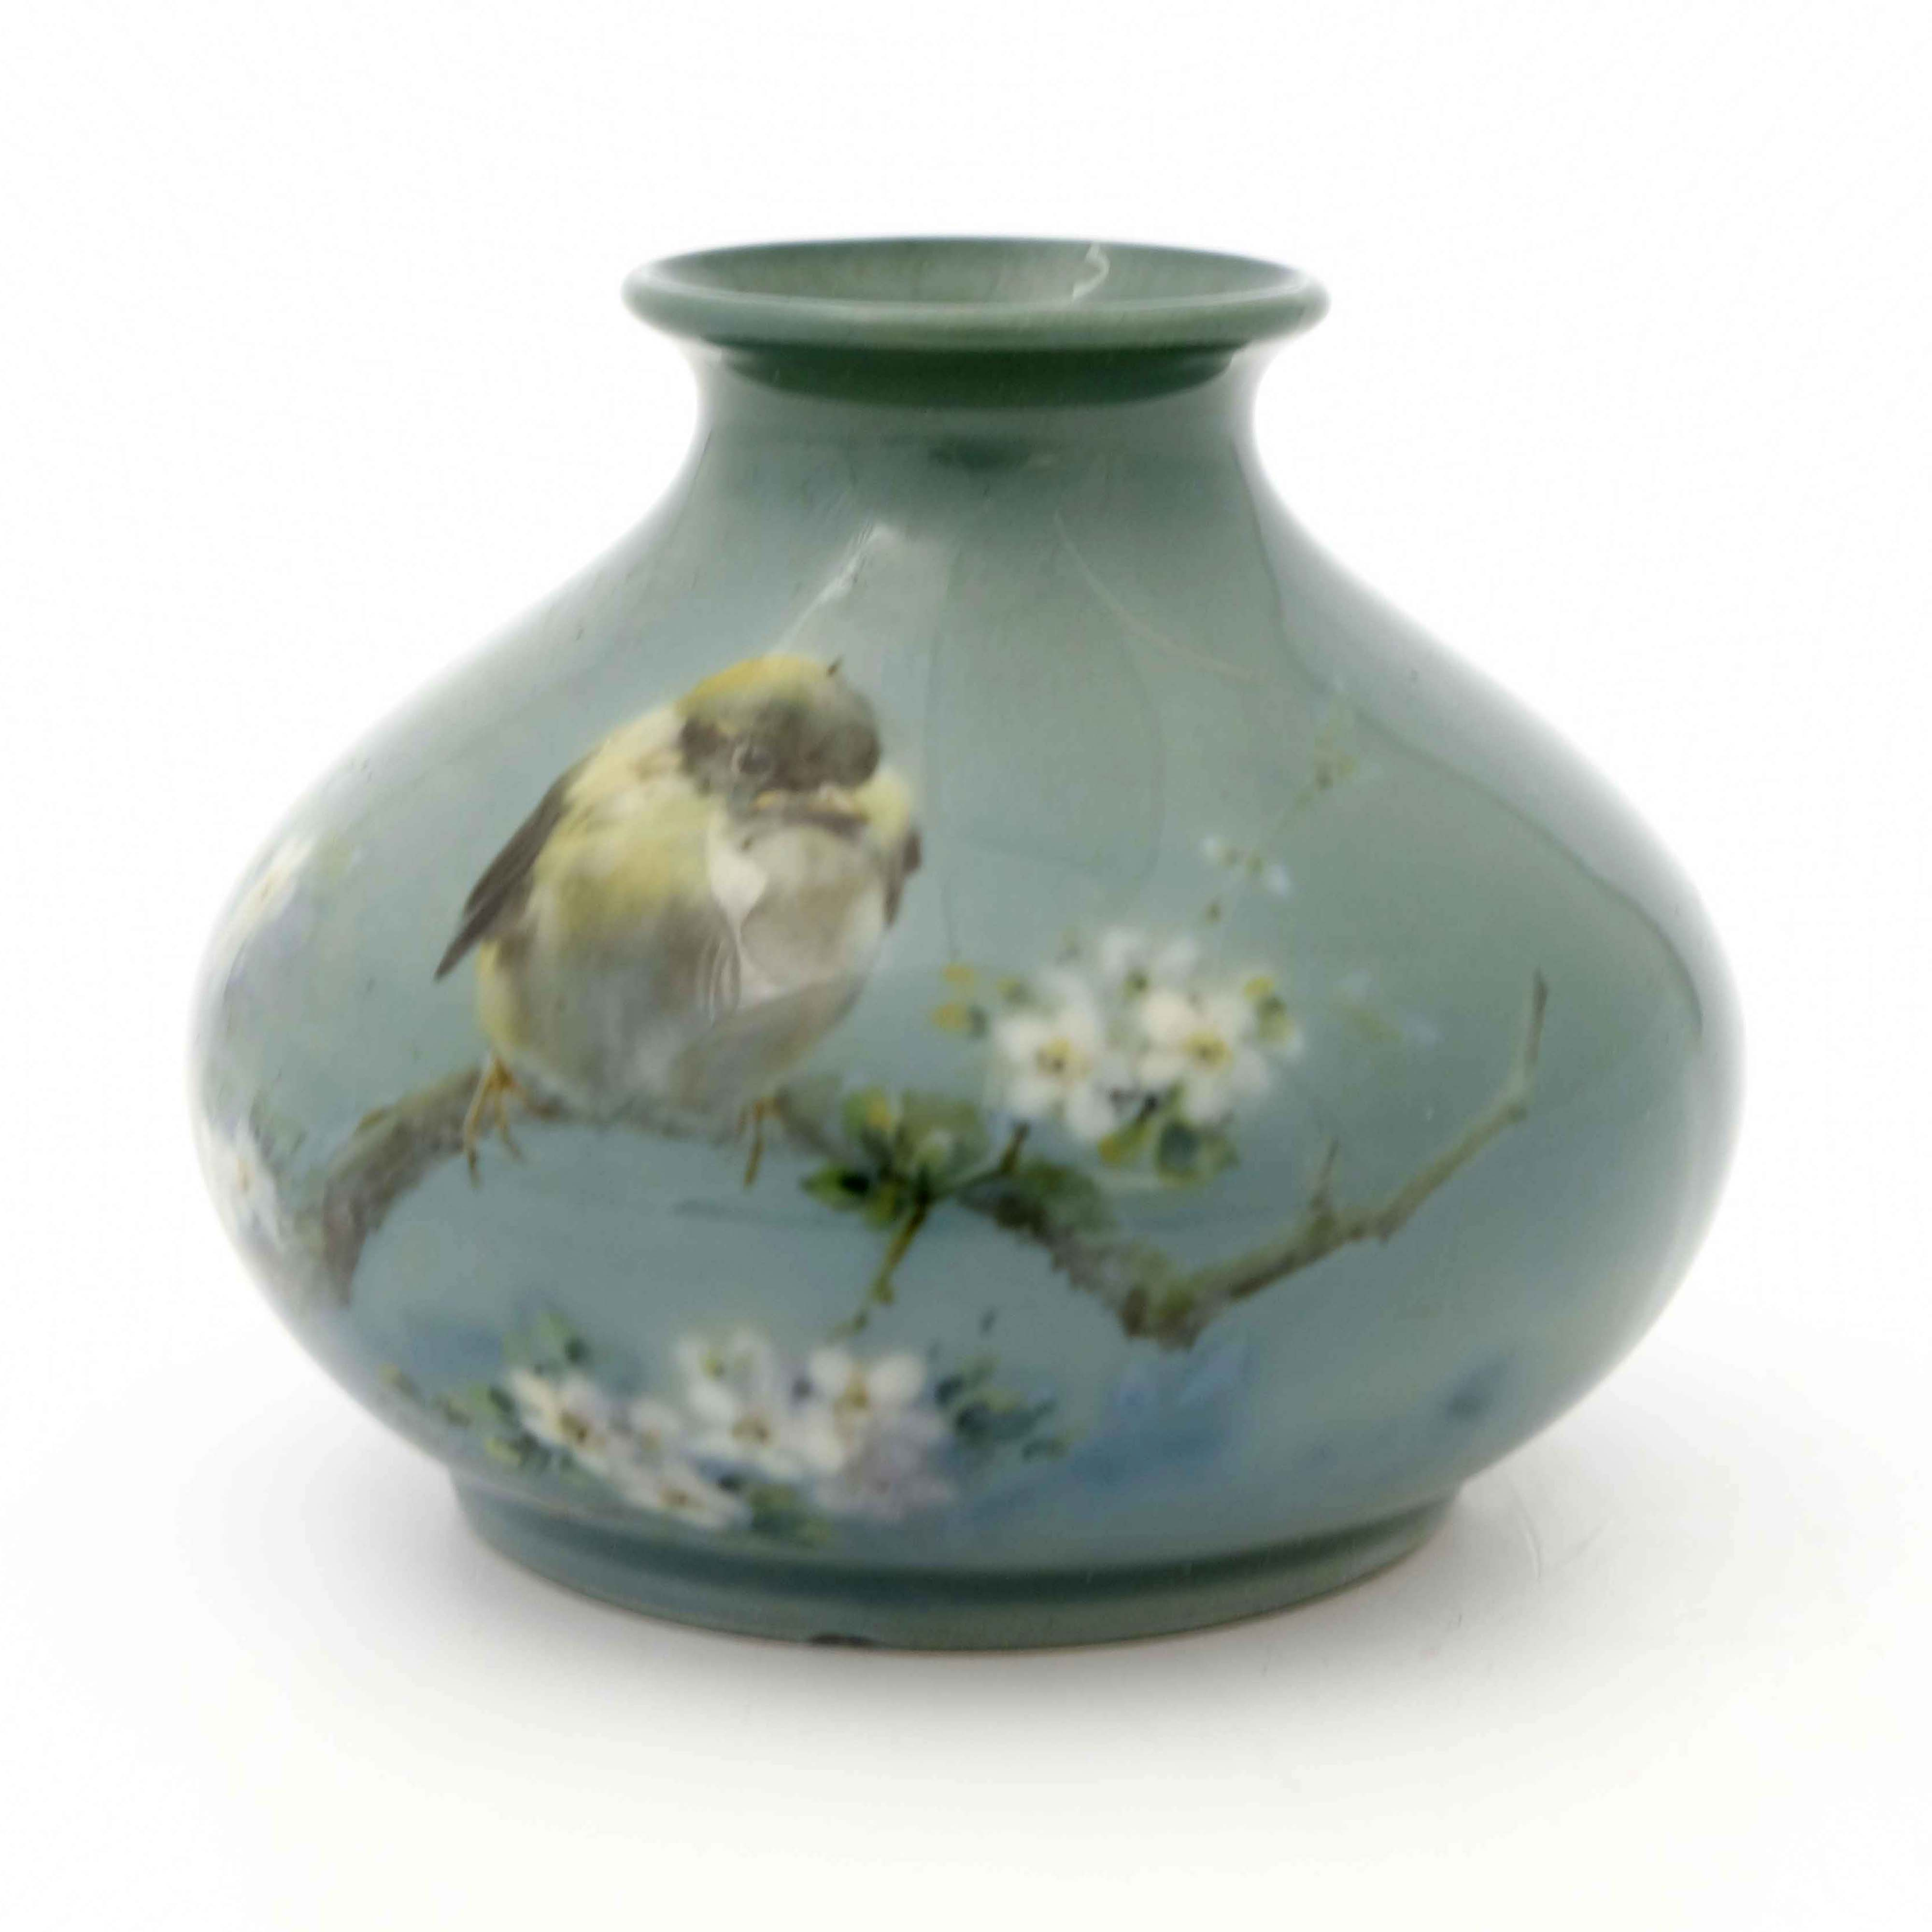 Harry Allen for Royal Doulton, a Titanian Young Fl - Image 4 of 6